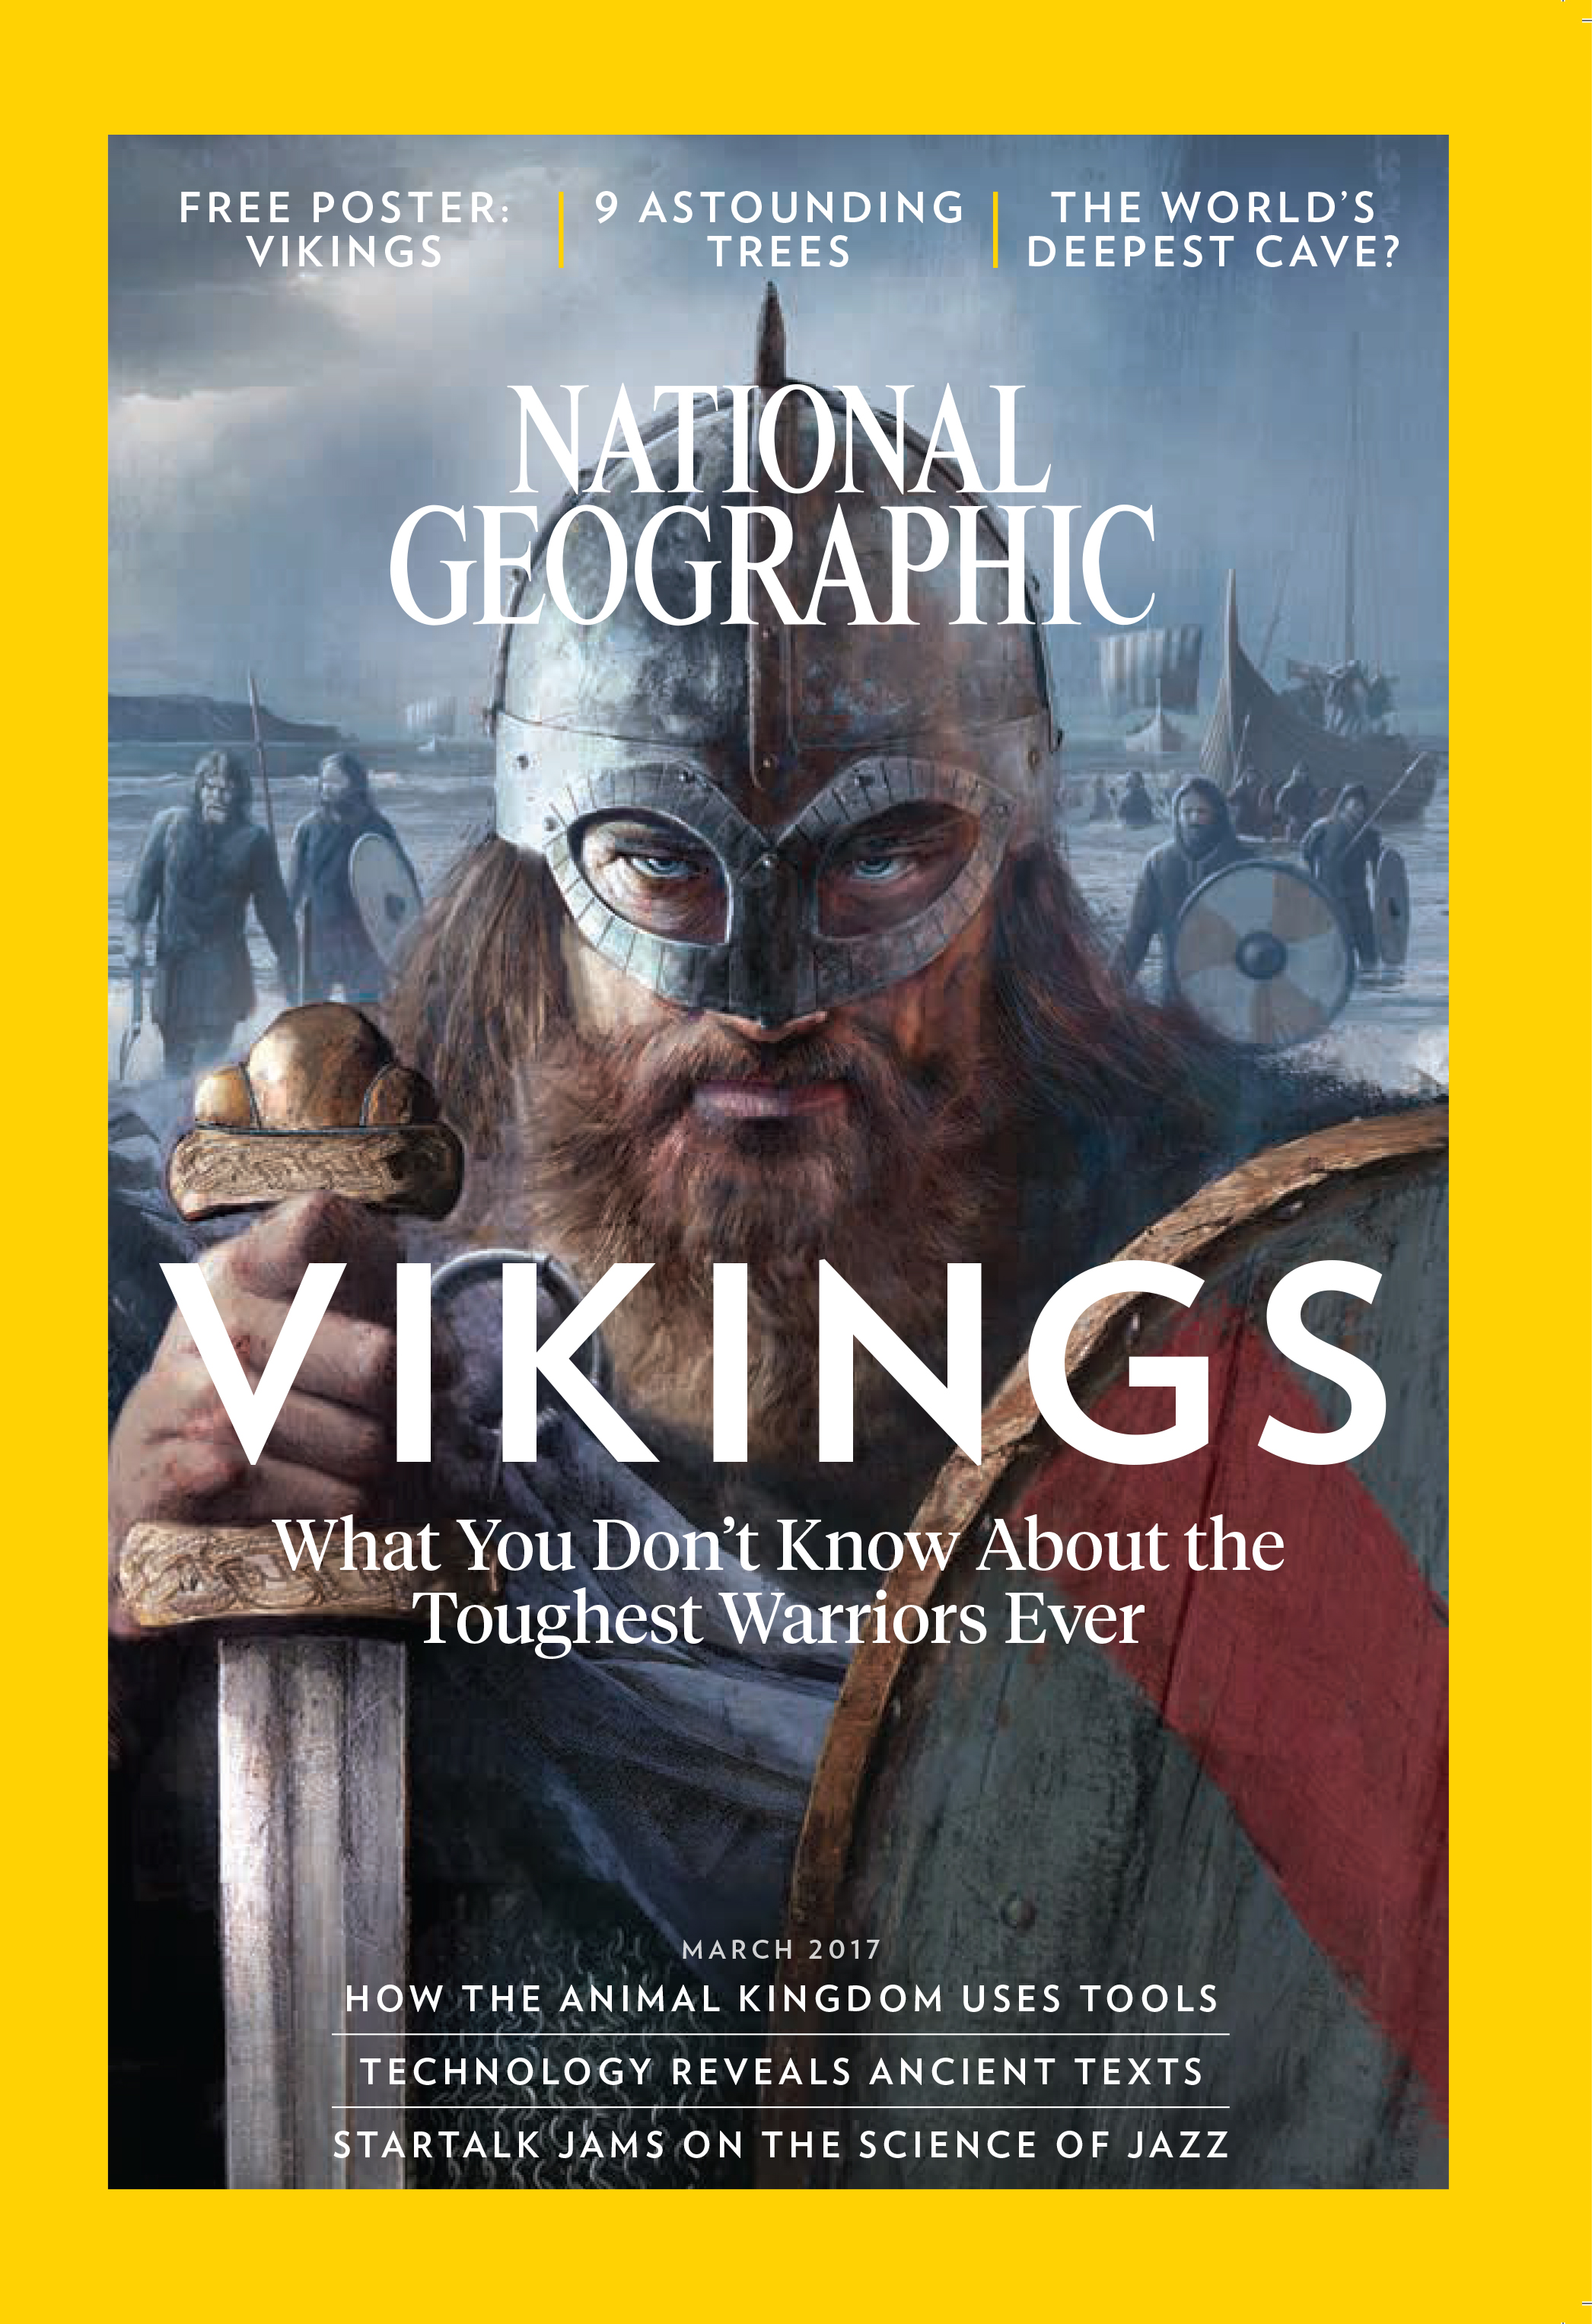 Photo Credit: National Geographic March 2017 Cover